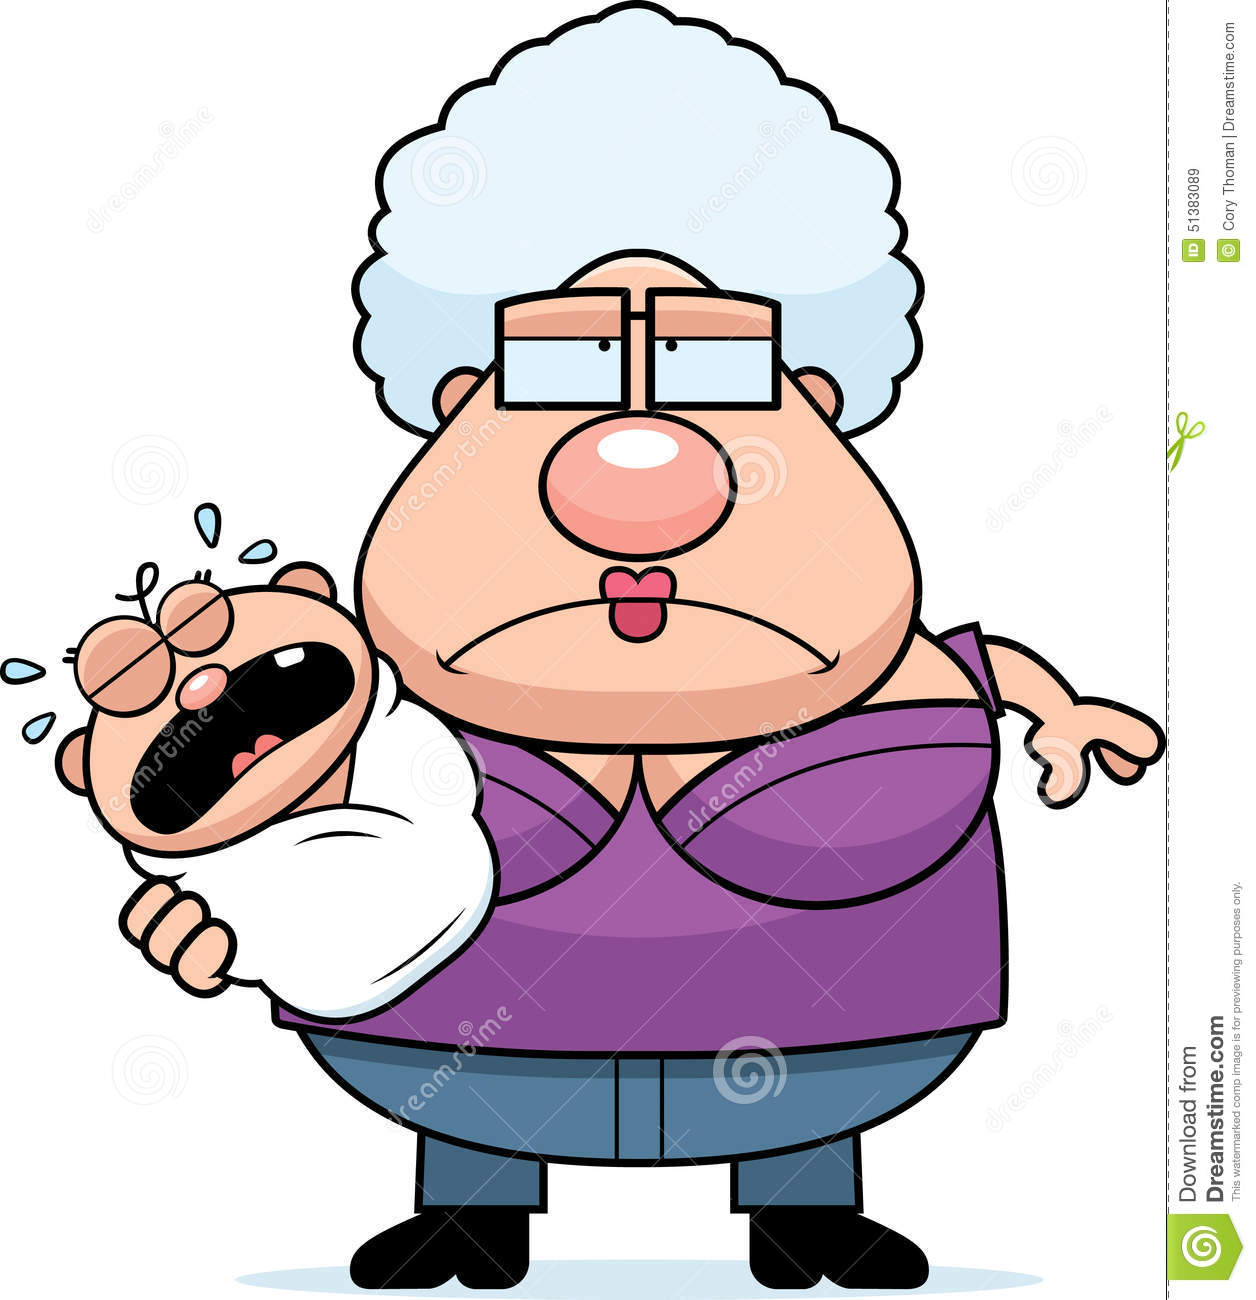 Cartoon Tired Grandma With Baby Stock Vector